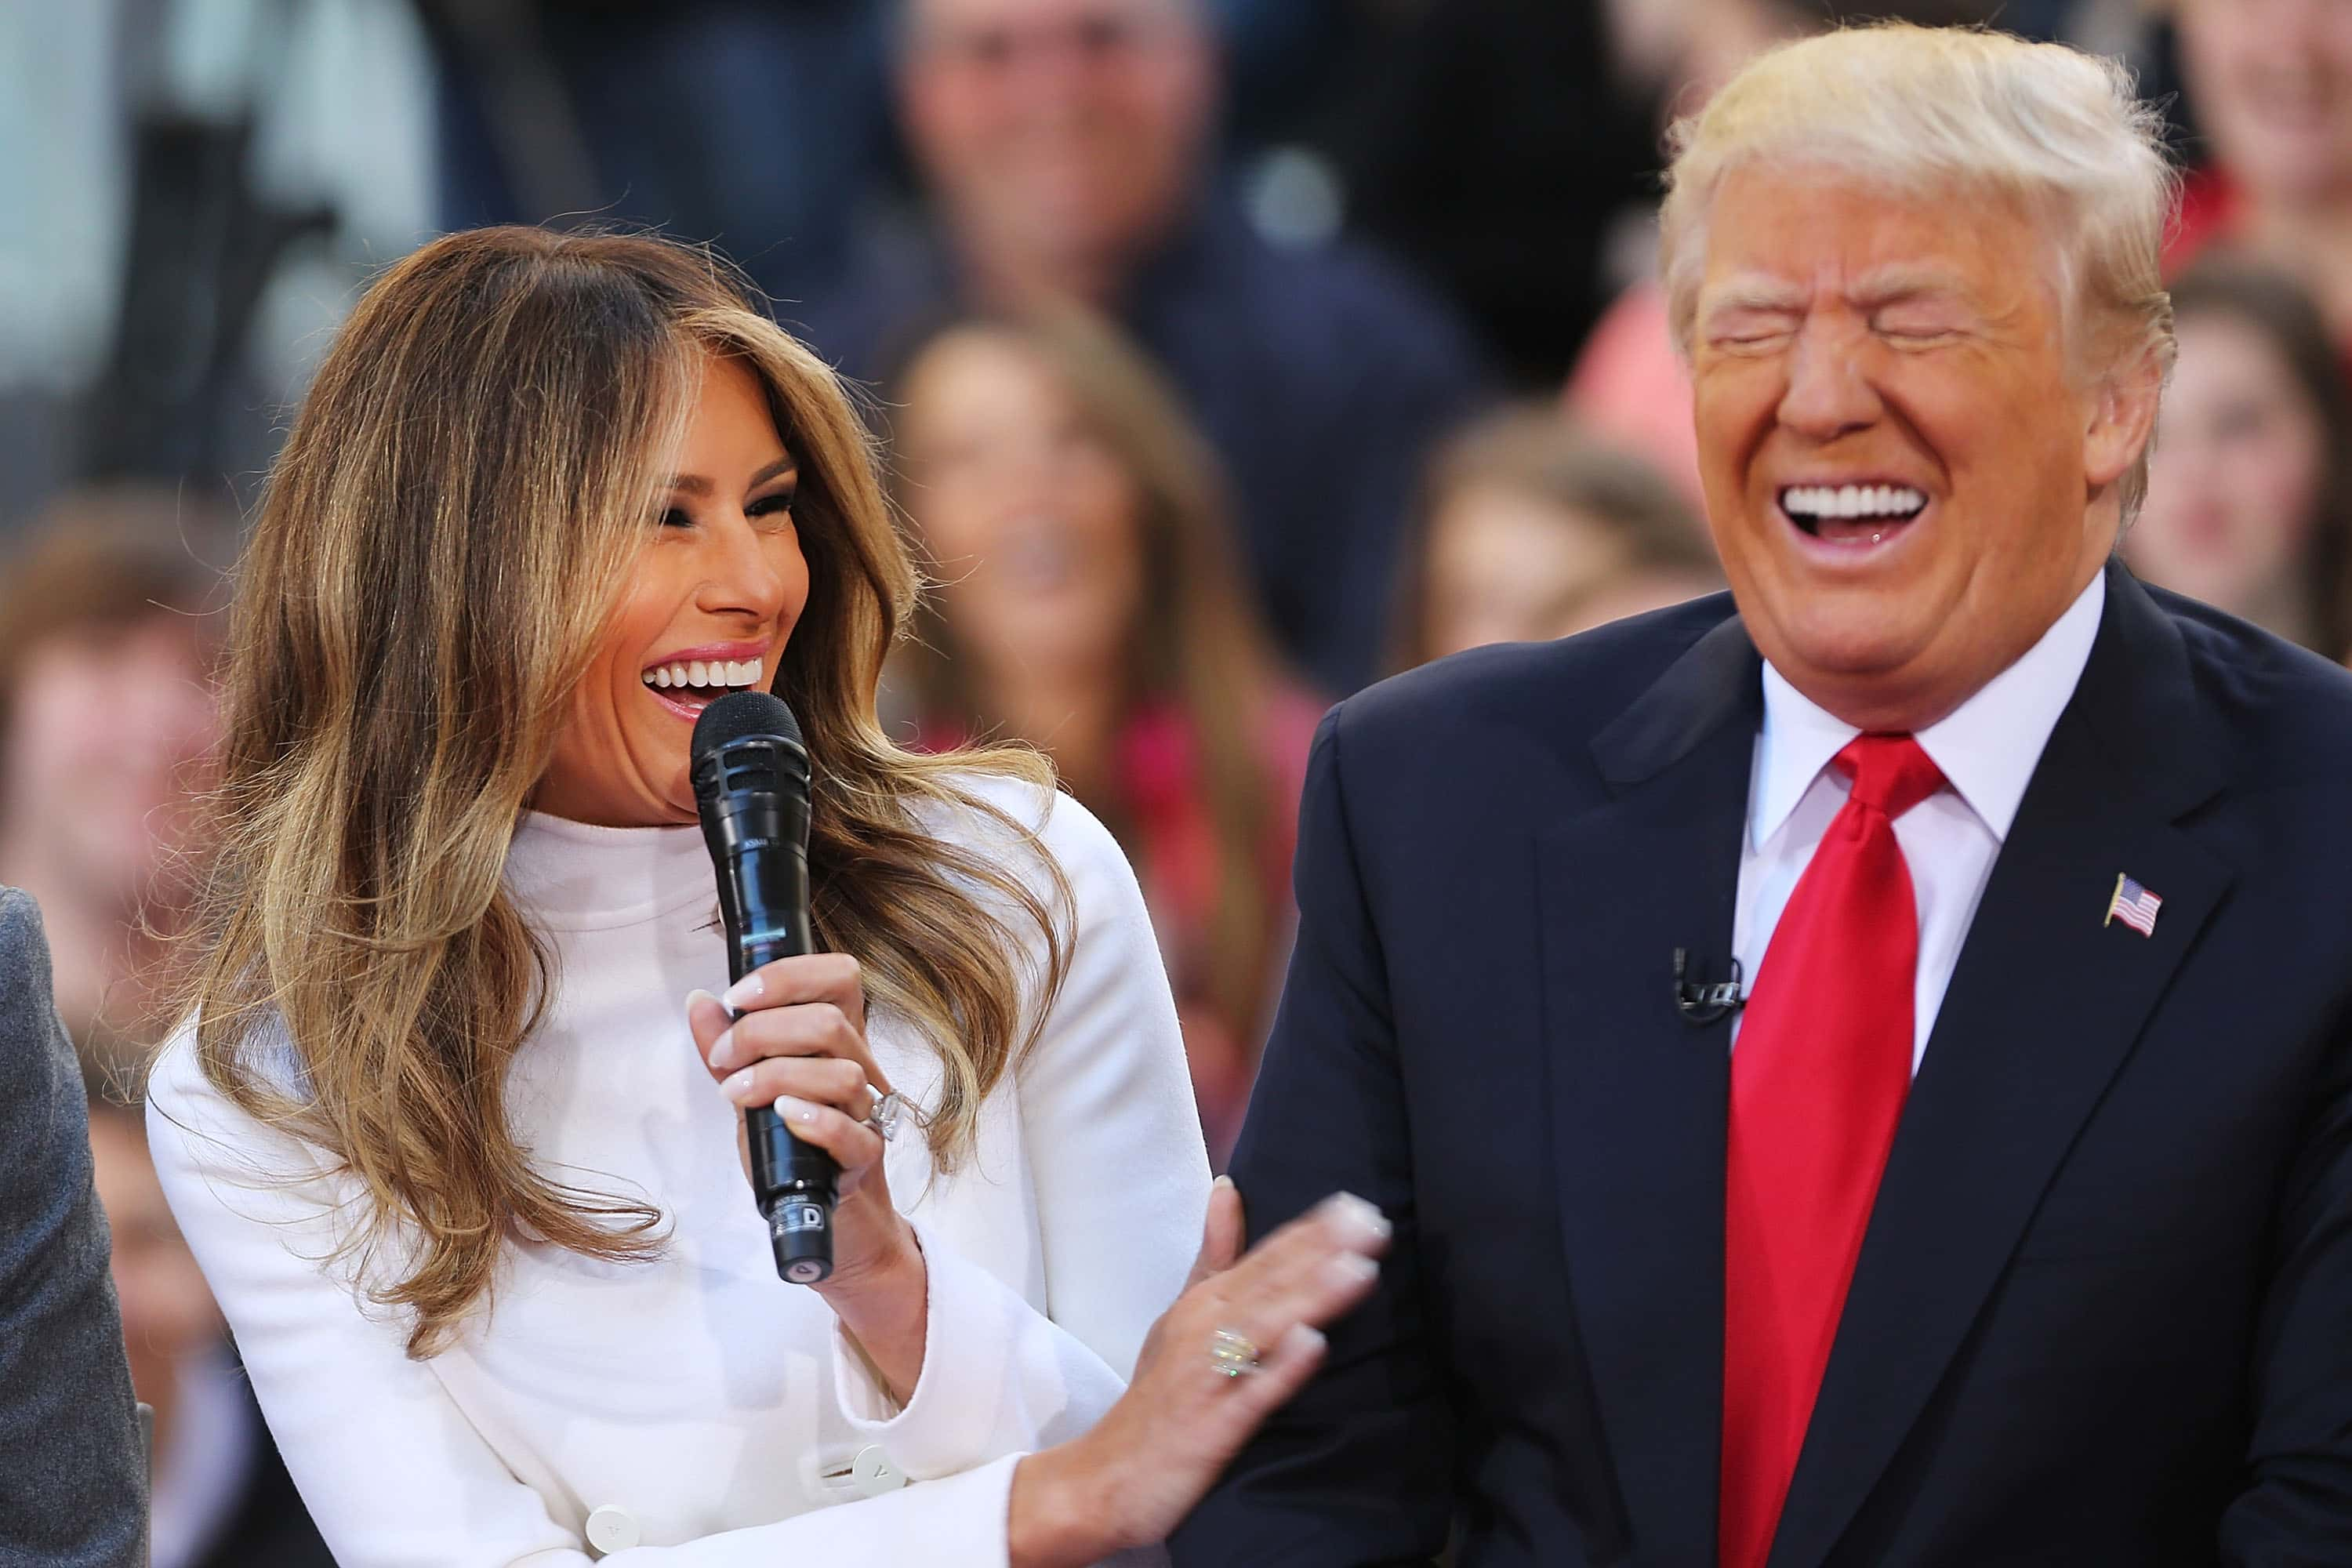 Body Language Expert On Trump-Melania Relationship: The Need To Have Her By His Side Is Very Strong